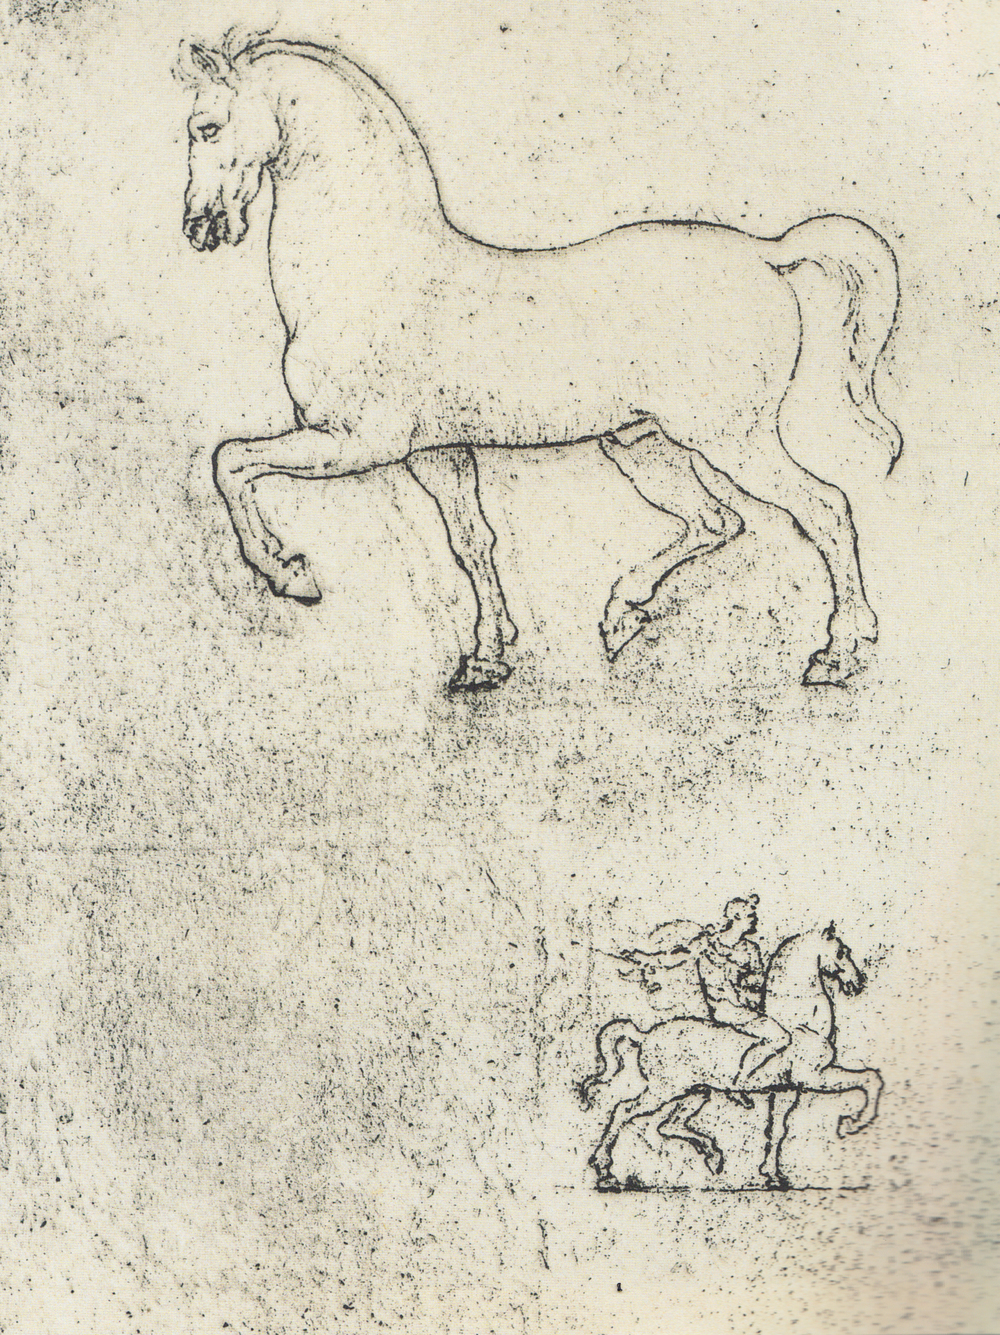 Leonardo da Vinci - Drawings - Animals - Horses - 07.jpg